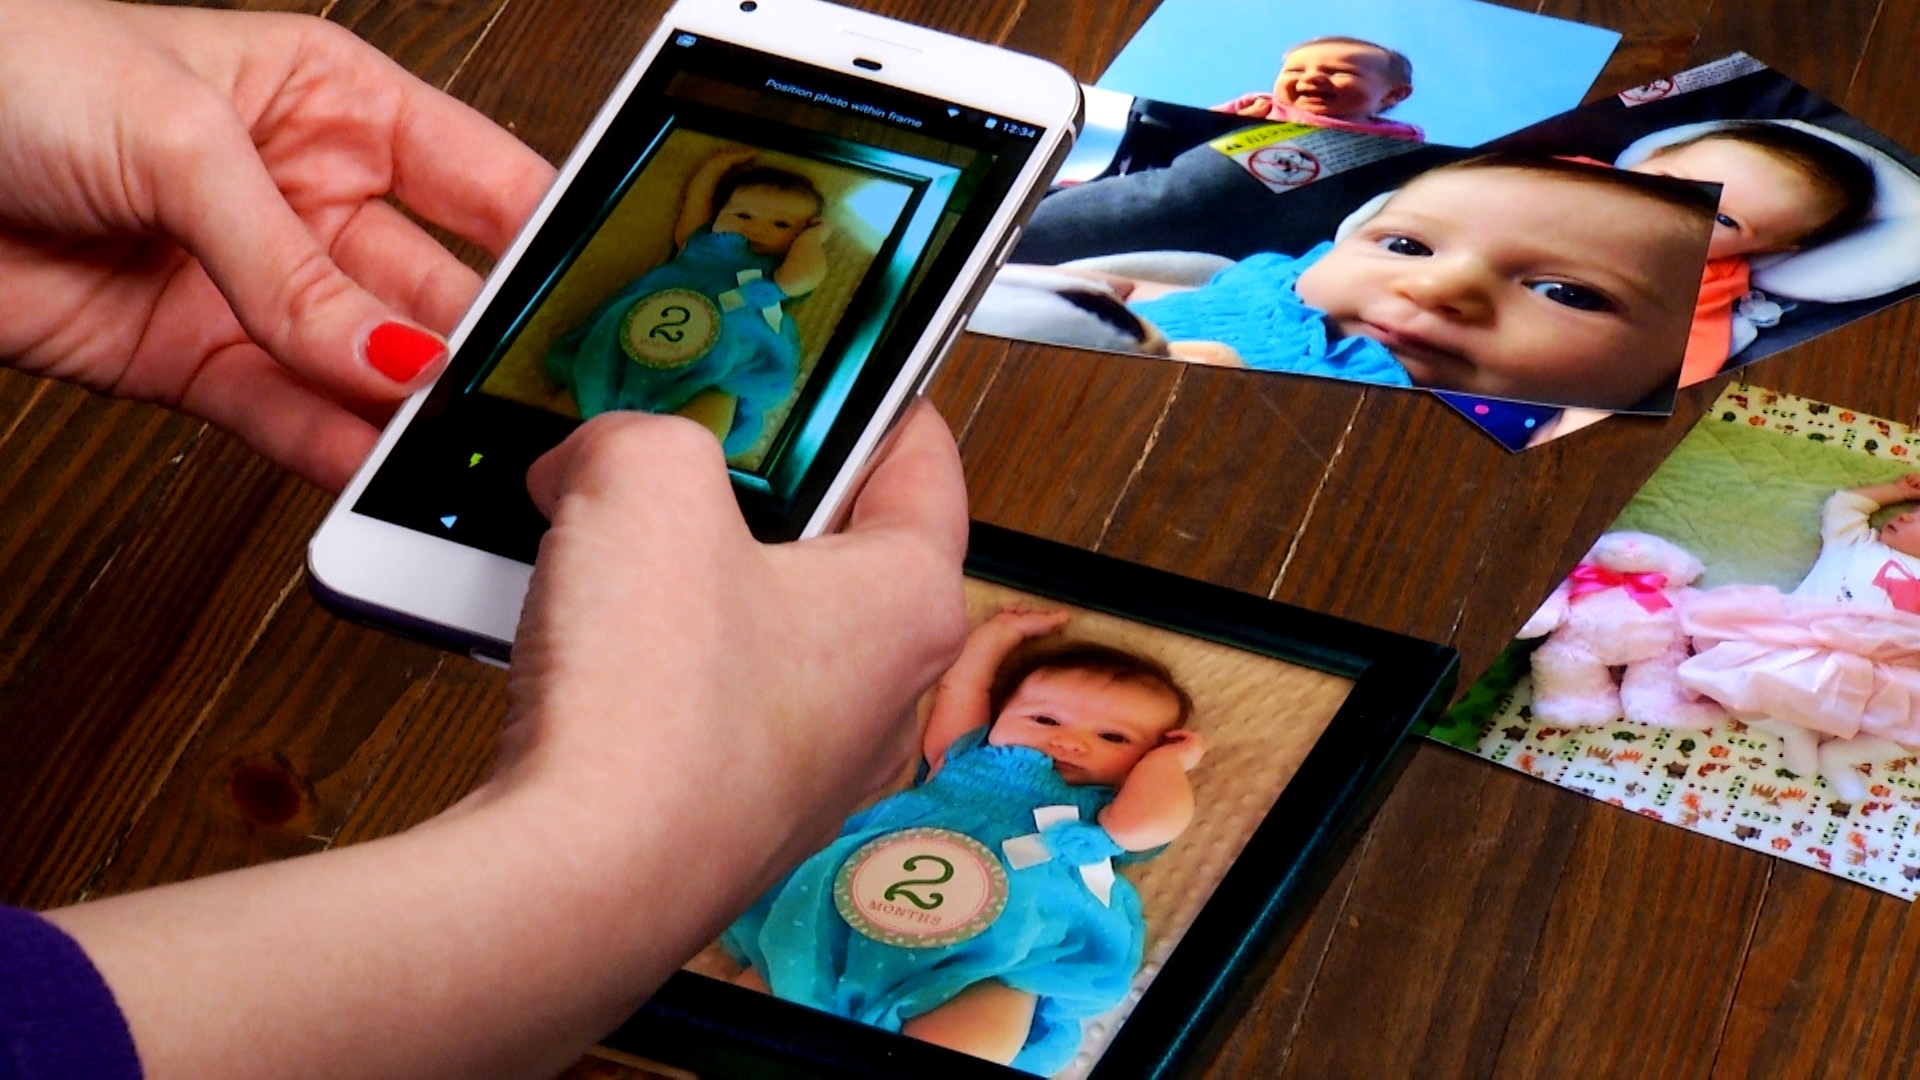 Video: Google's PhotoScan saves your printed photos without glare